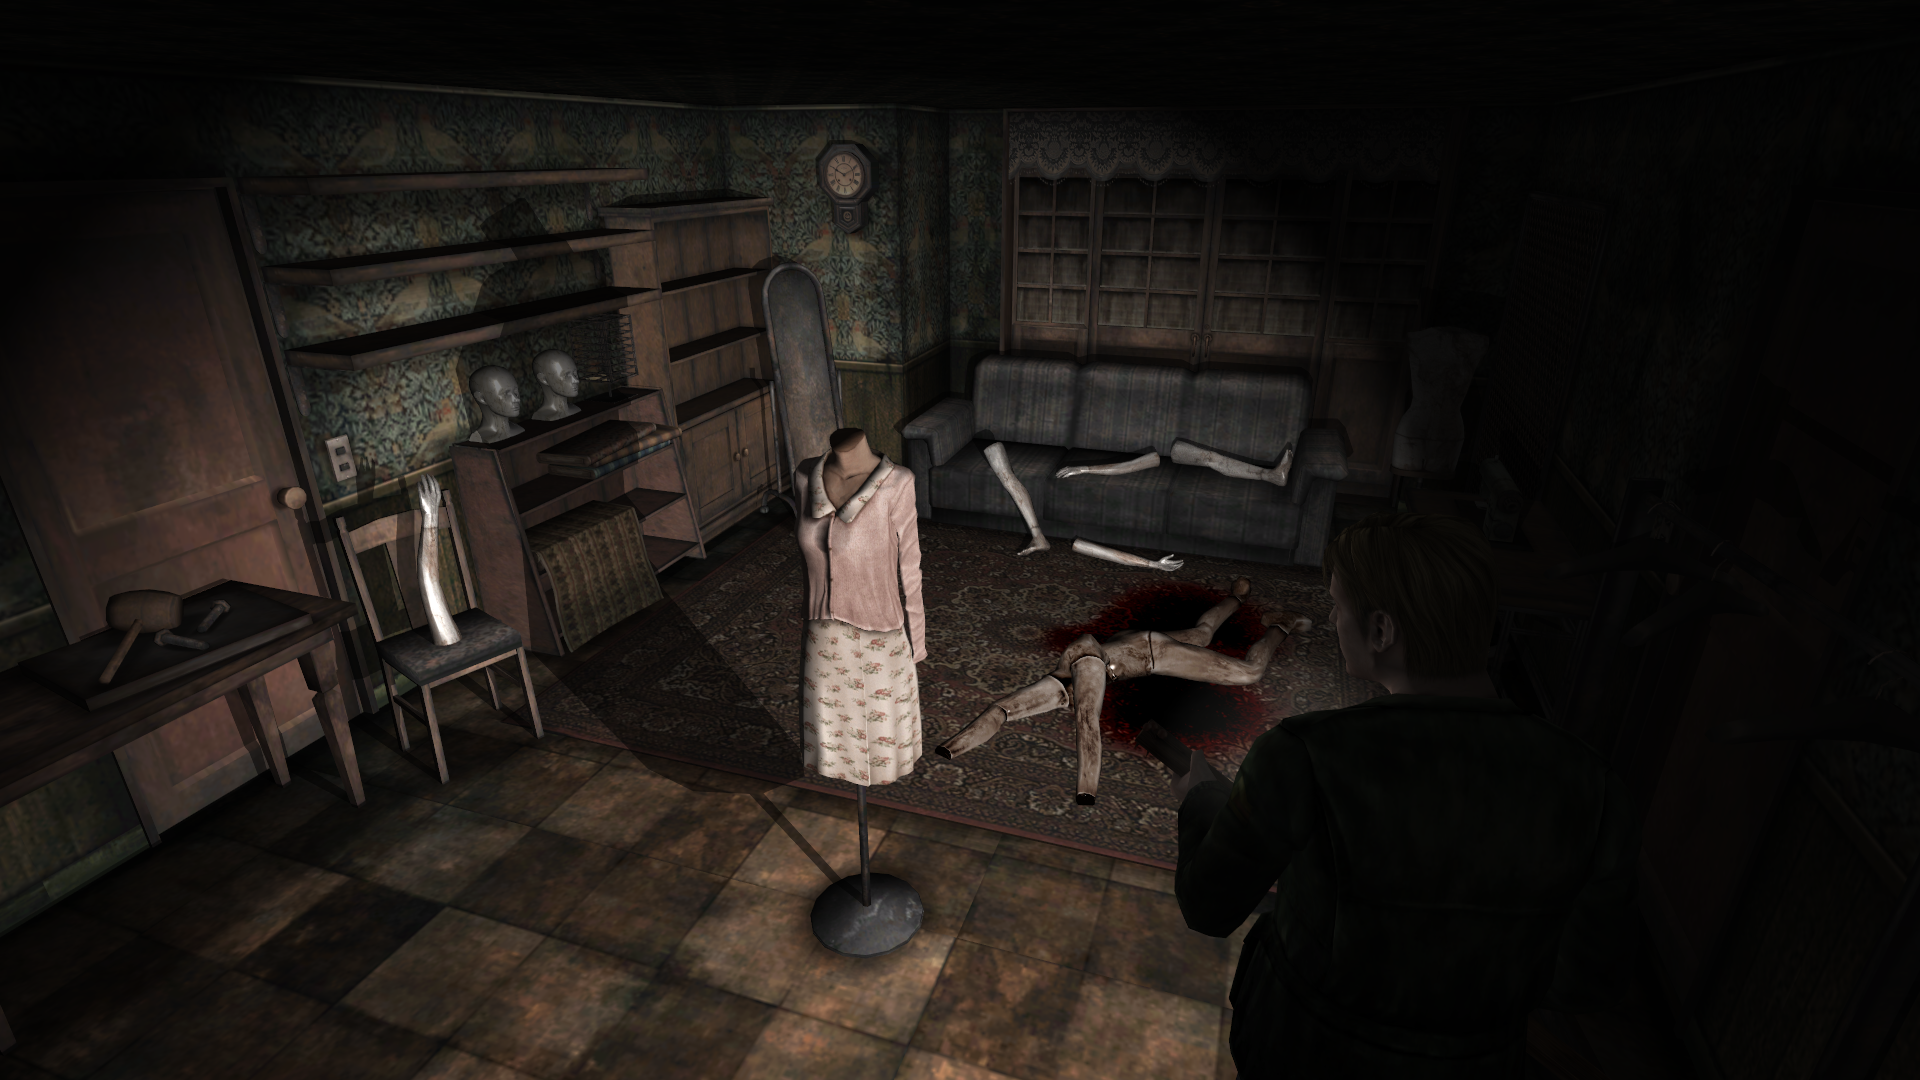 Death In Gaming Learning About Grief With Silent Hill 2 The